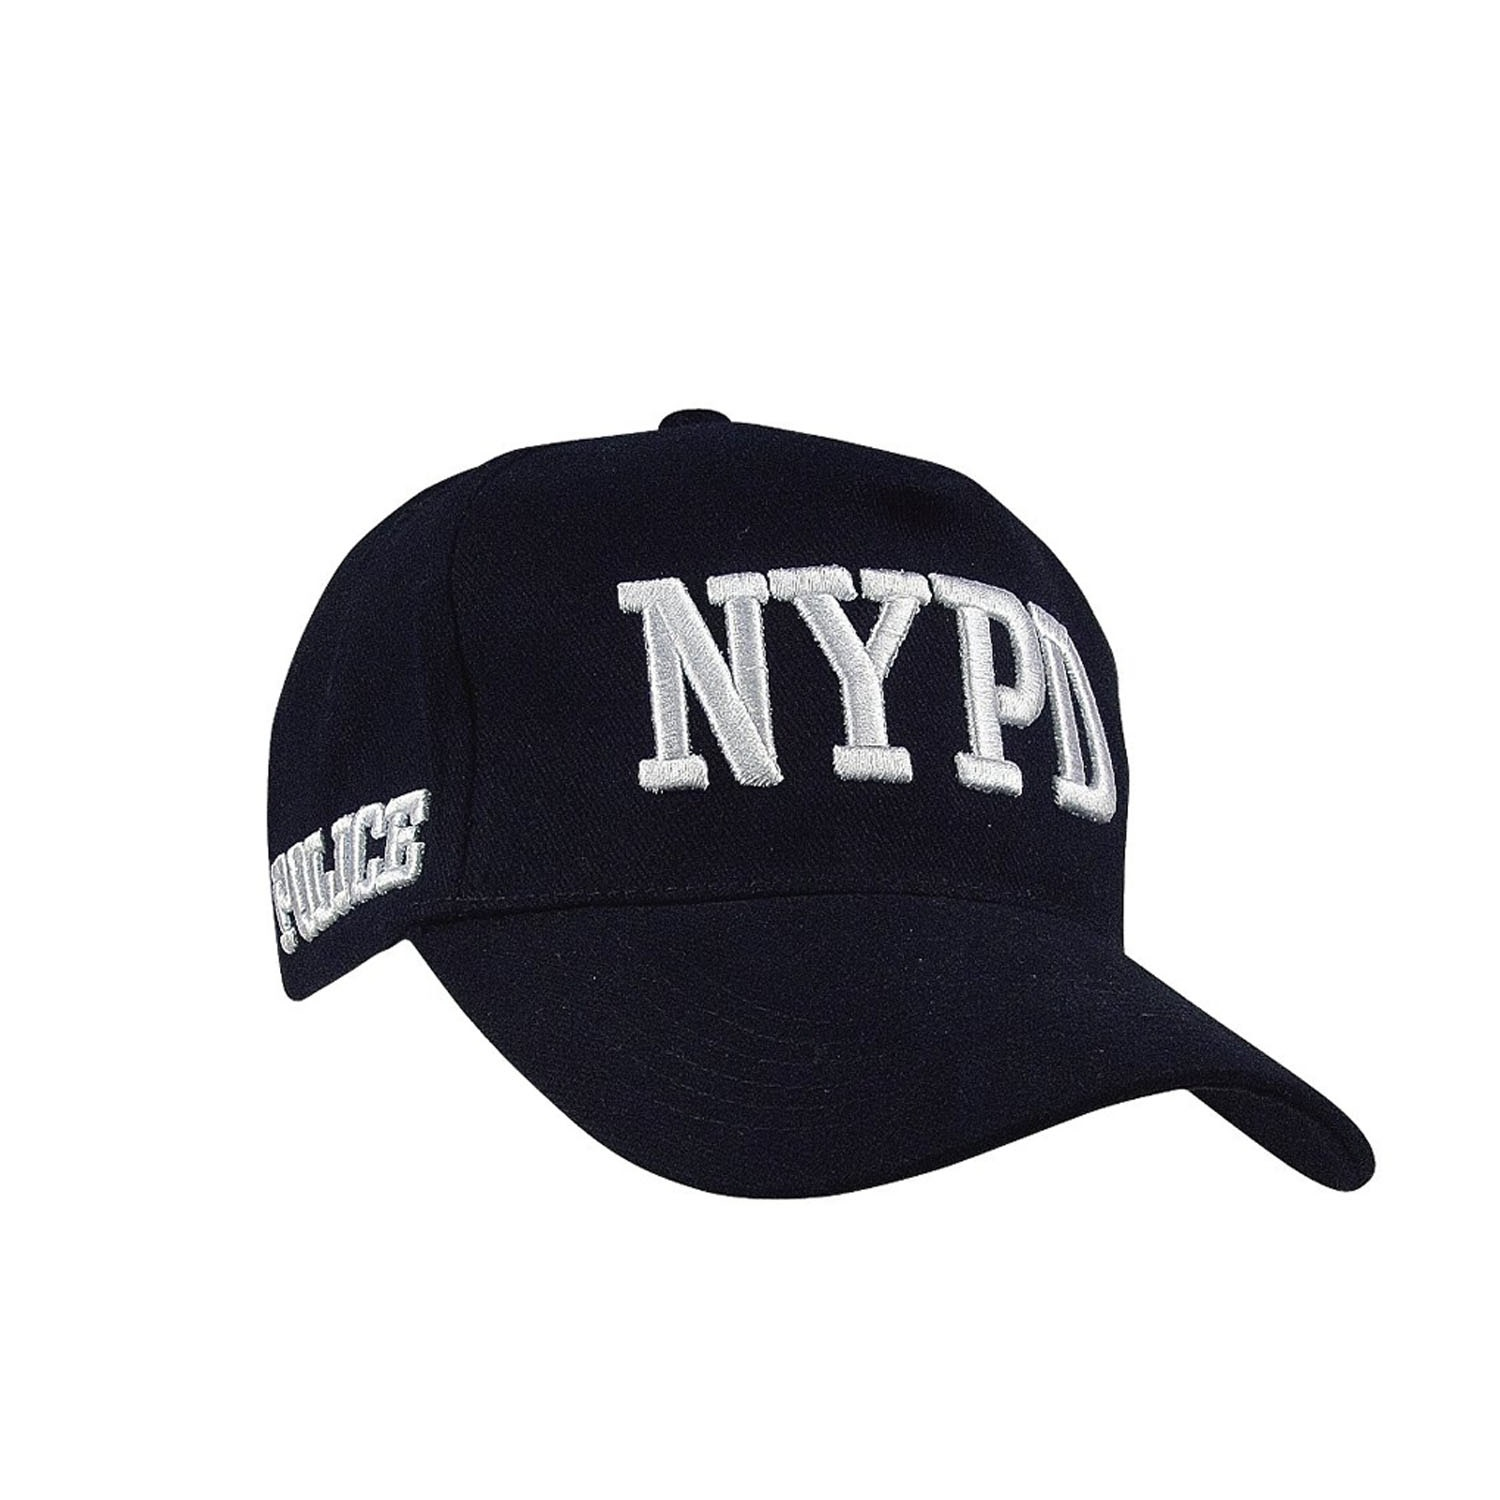 850e34b1cc4 Supreme Low Profile Insignia Cap Hat NYPD 2